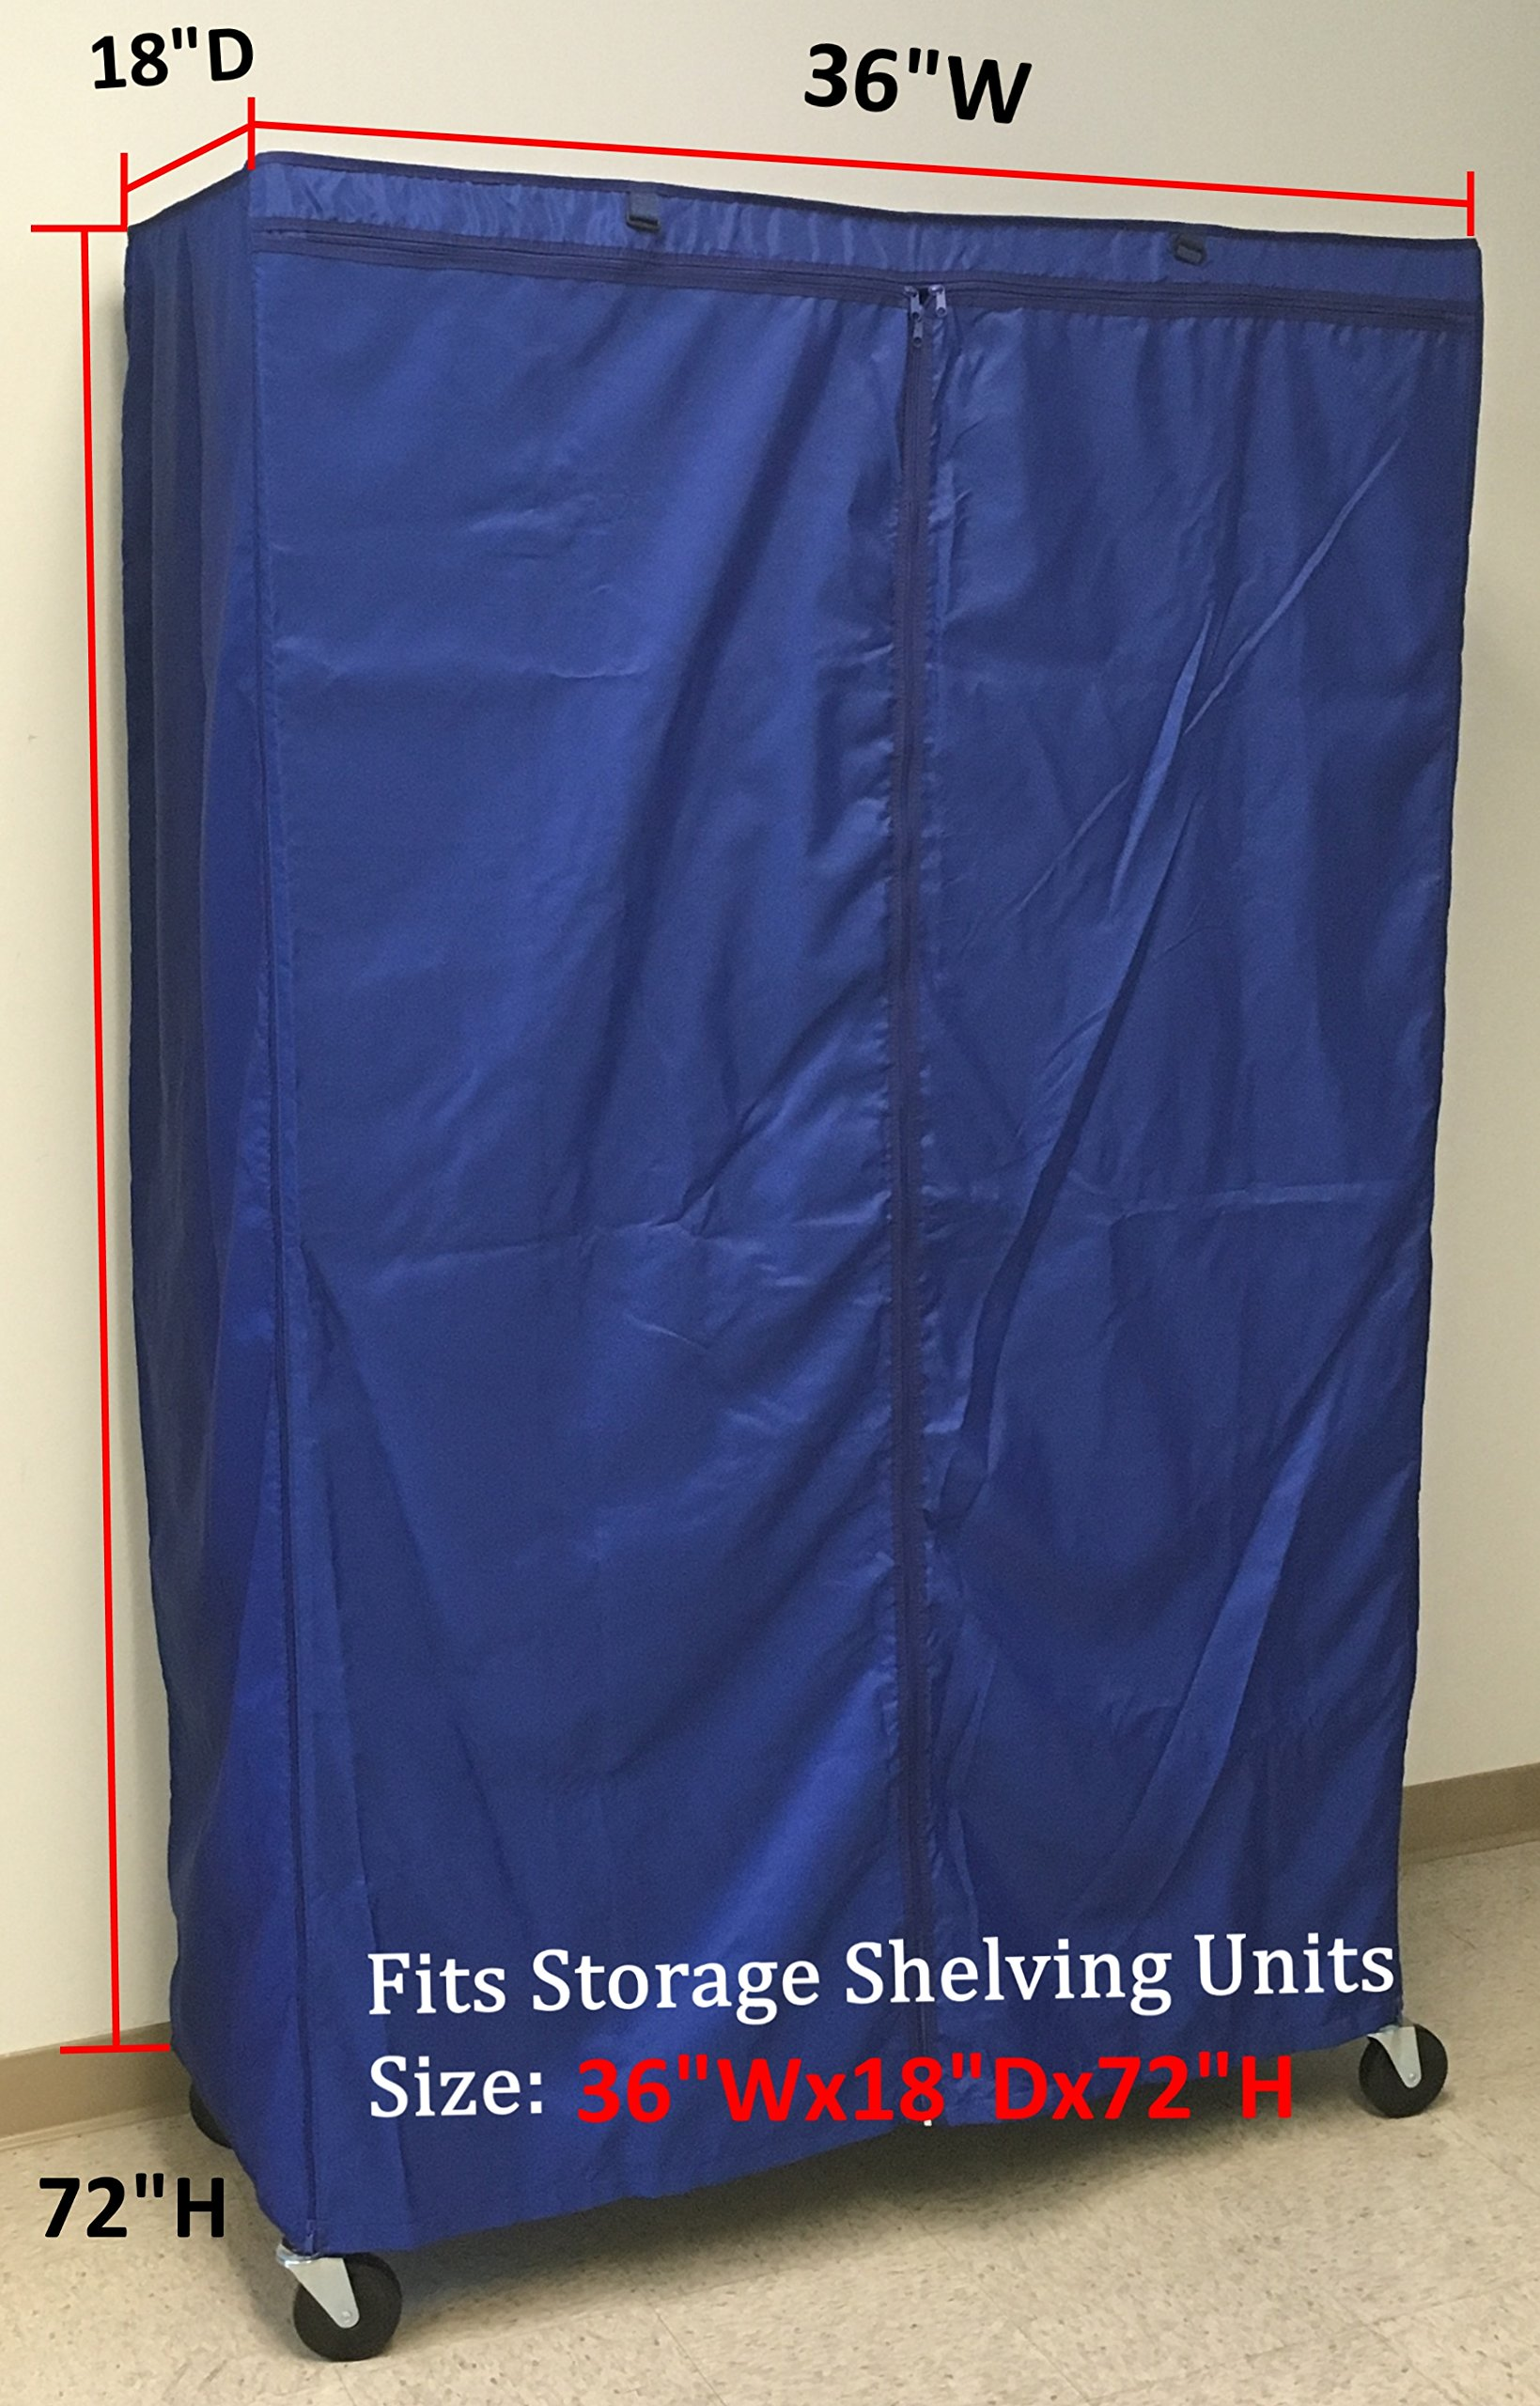 Storage Shelving unit cover, fit racks 36''Wx18''Dx72''H (Cover Only, Royal Blue)